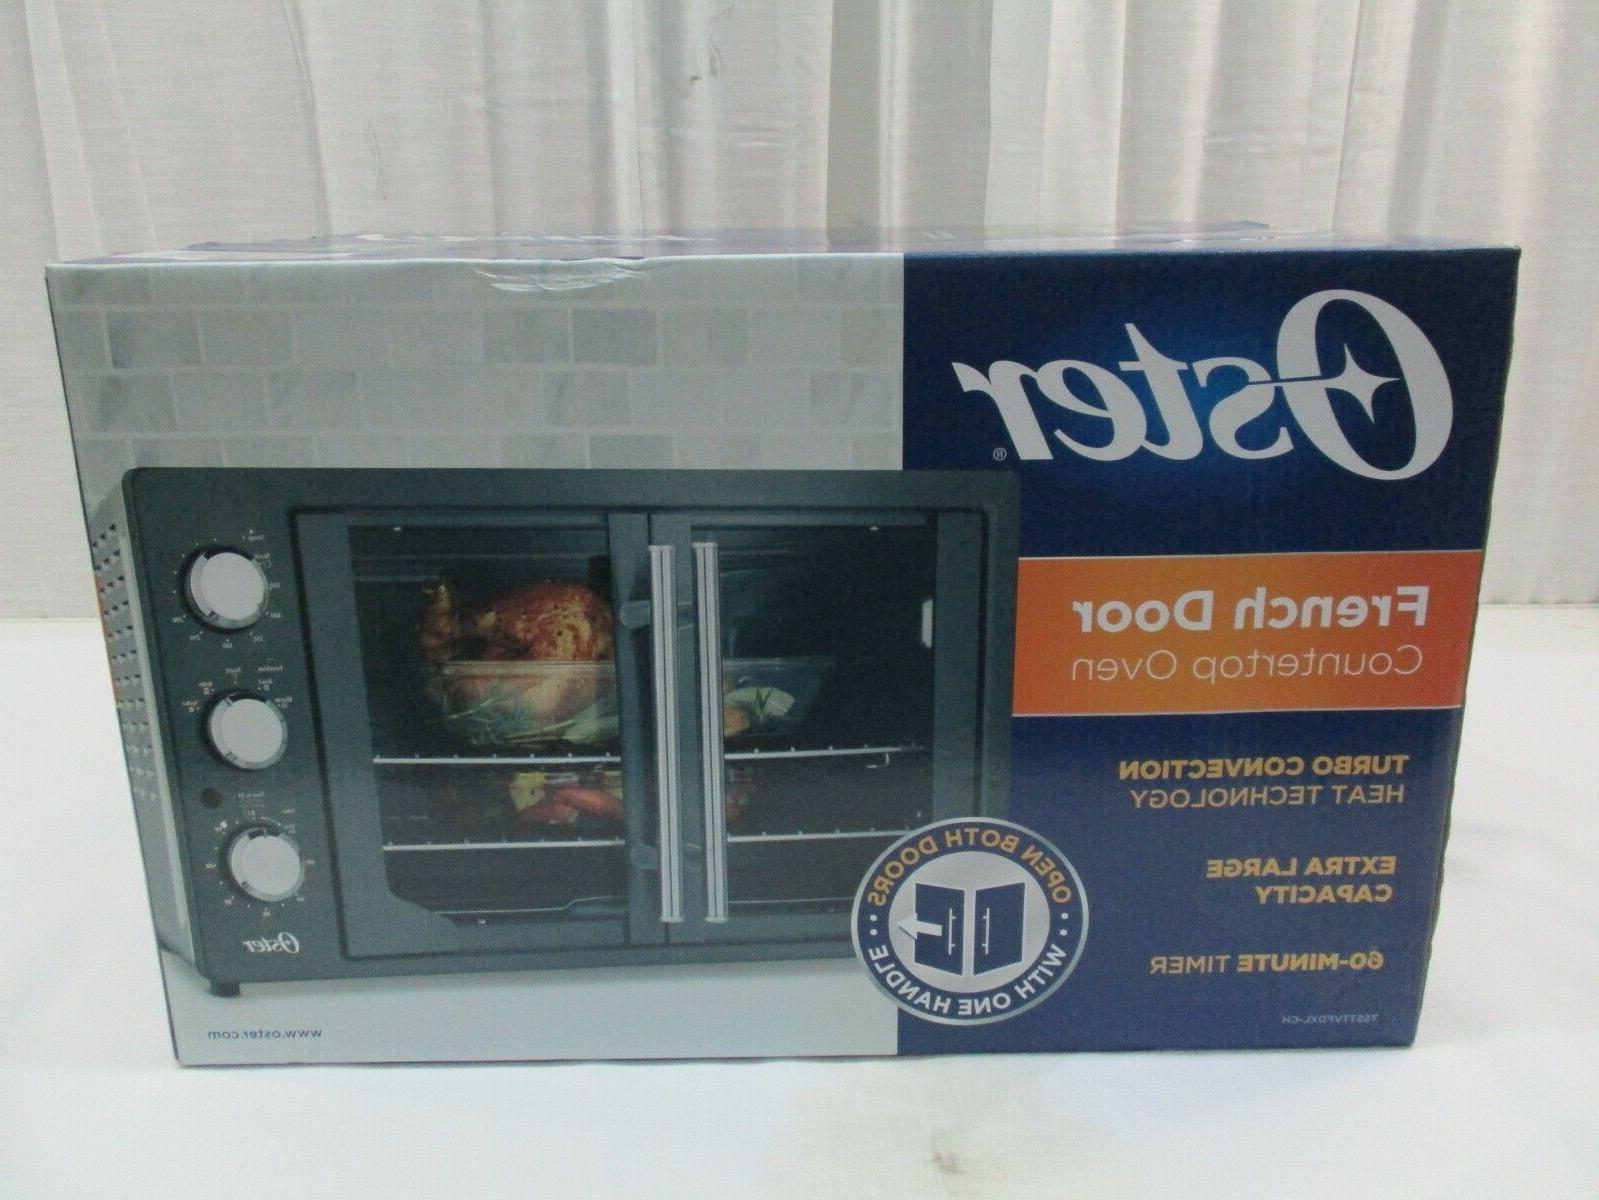 Oster Convection Toaster &